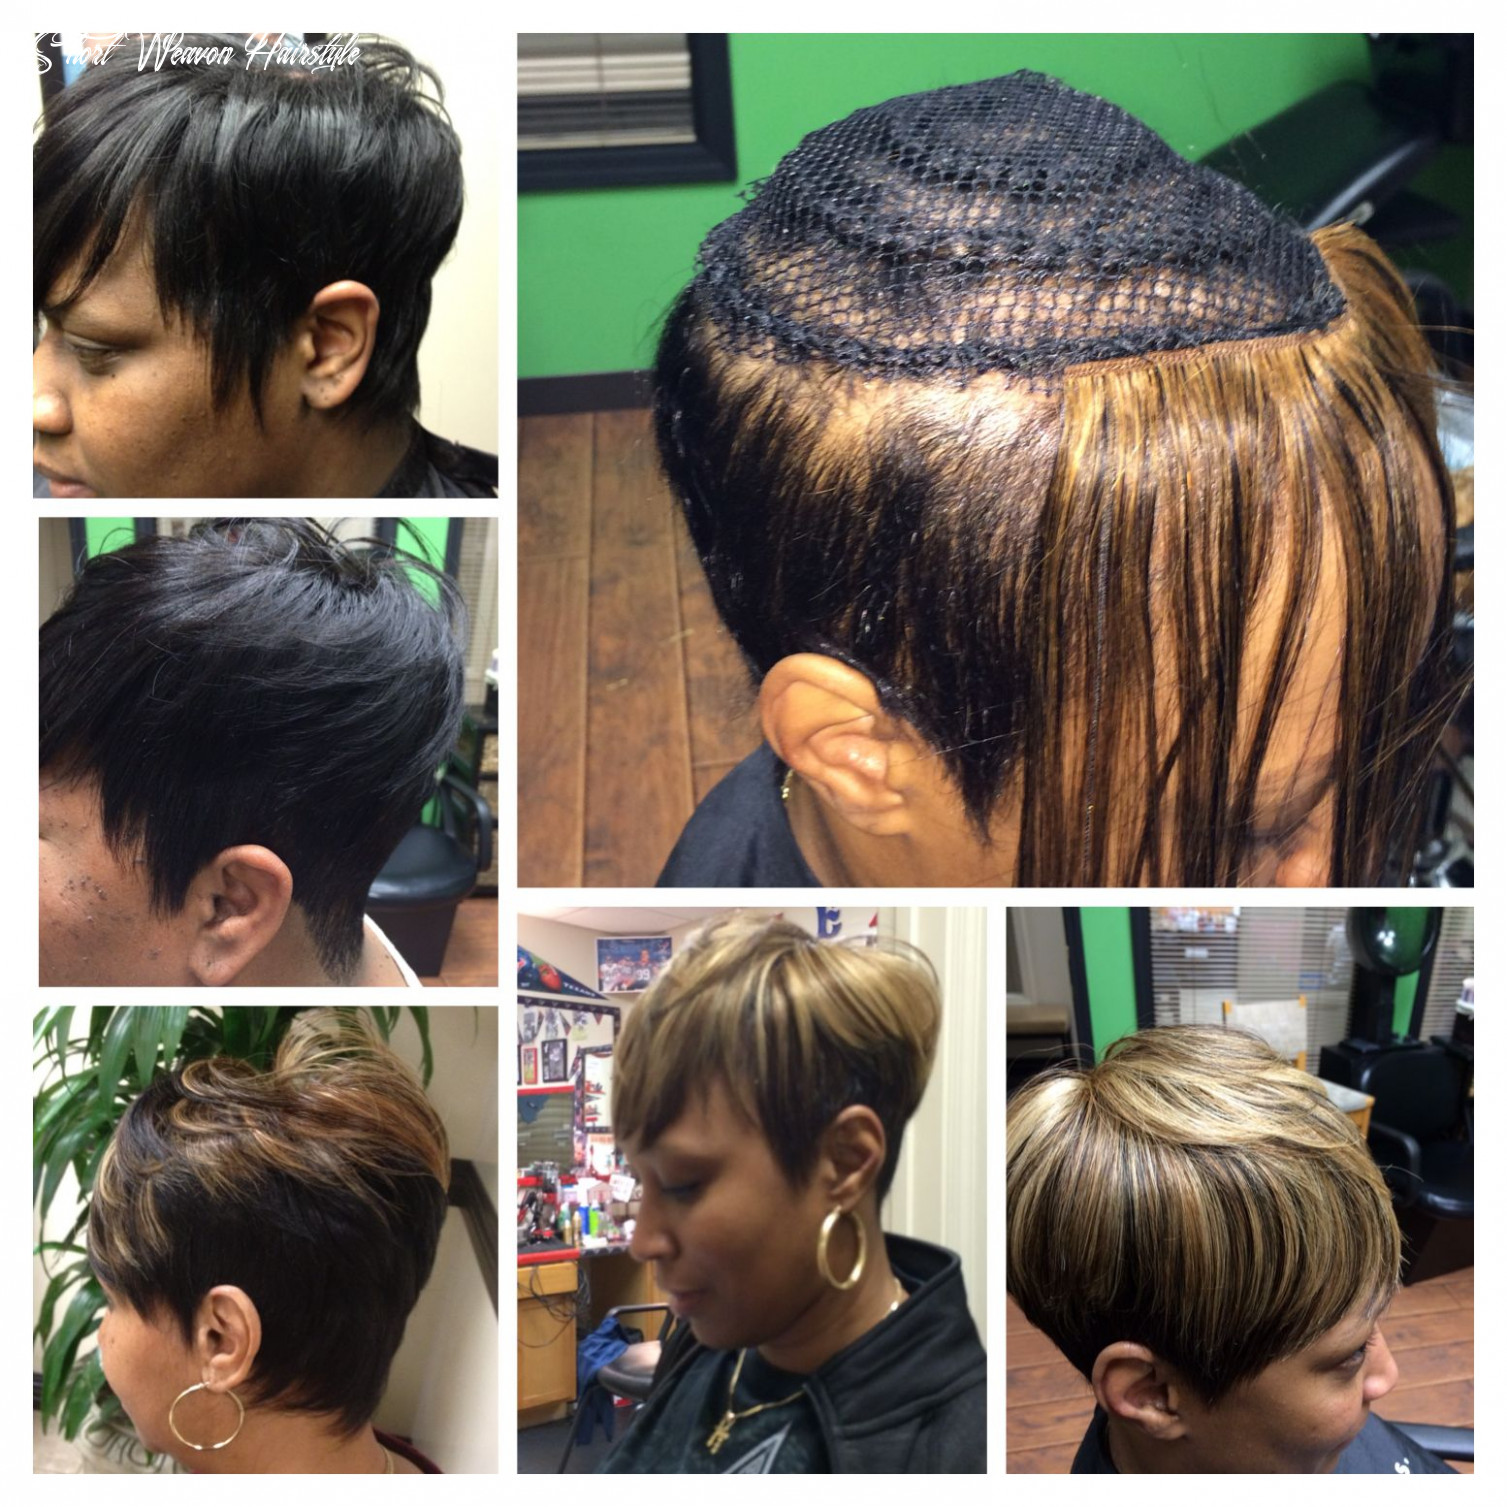 Shorthair inspired by summer short crop sew ins, no glue used in